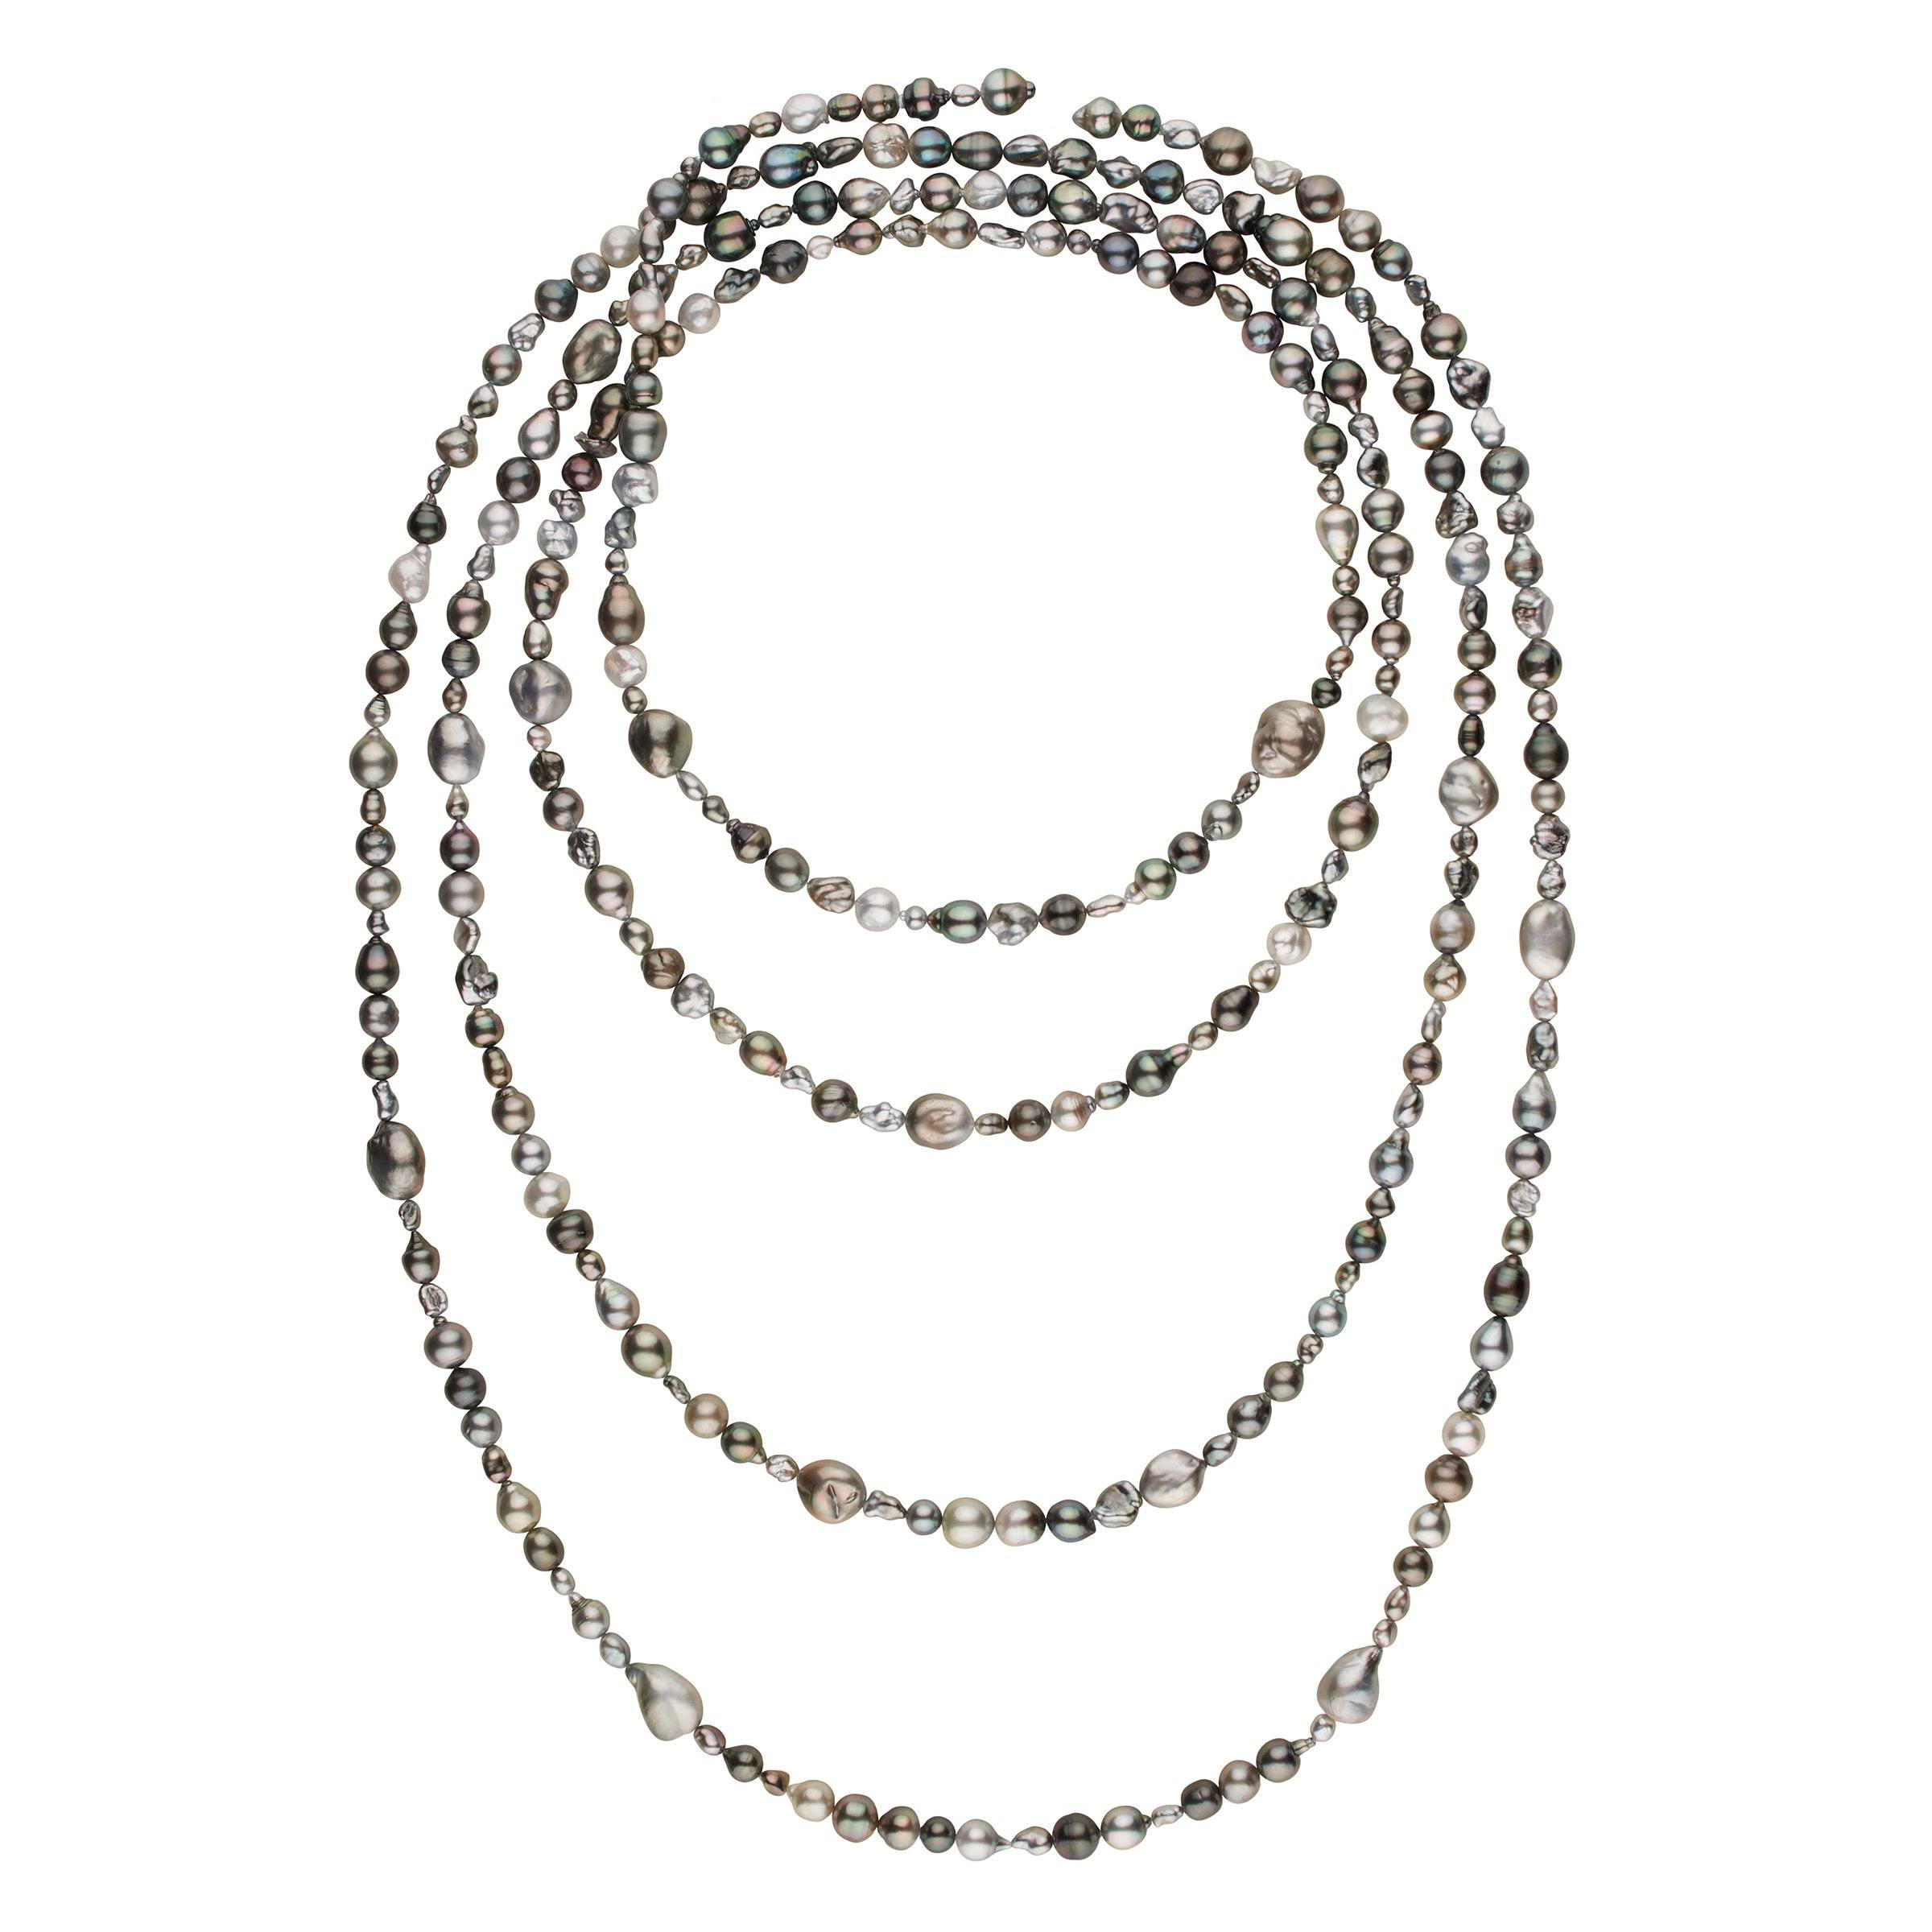 Andy Müller Tahitian Baroque Rope - 297 pearls